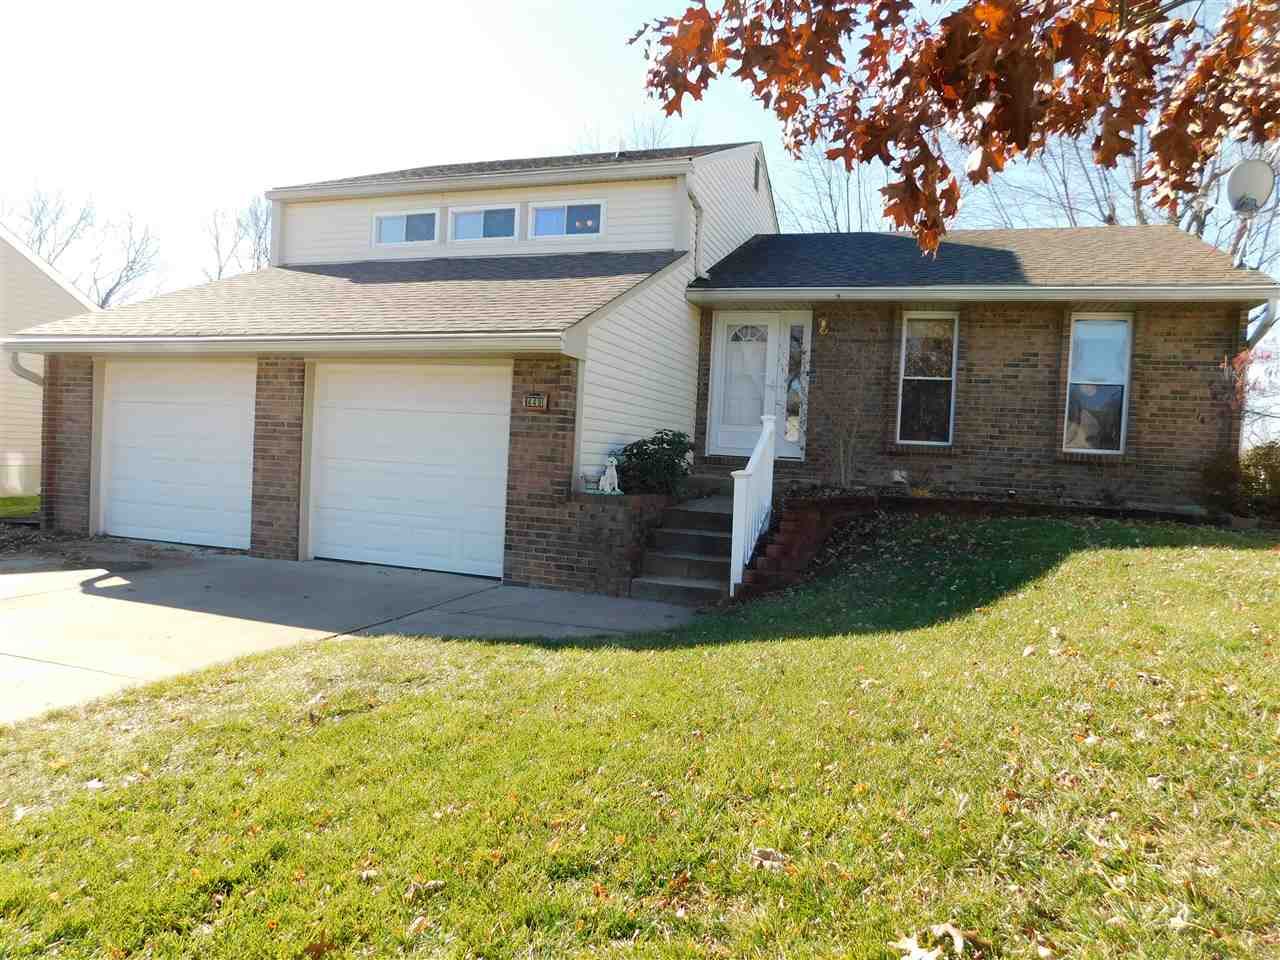 Photo 1 for 449 Glenview Ct Edgewood, KY 41017